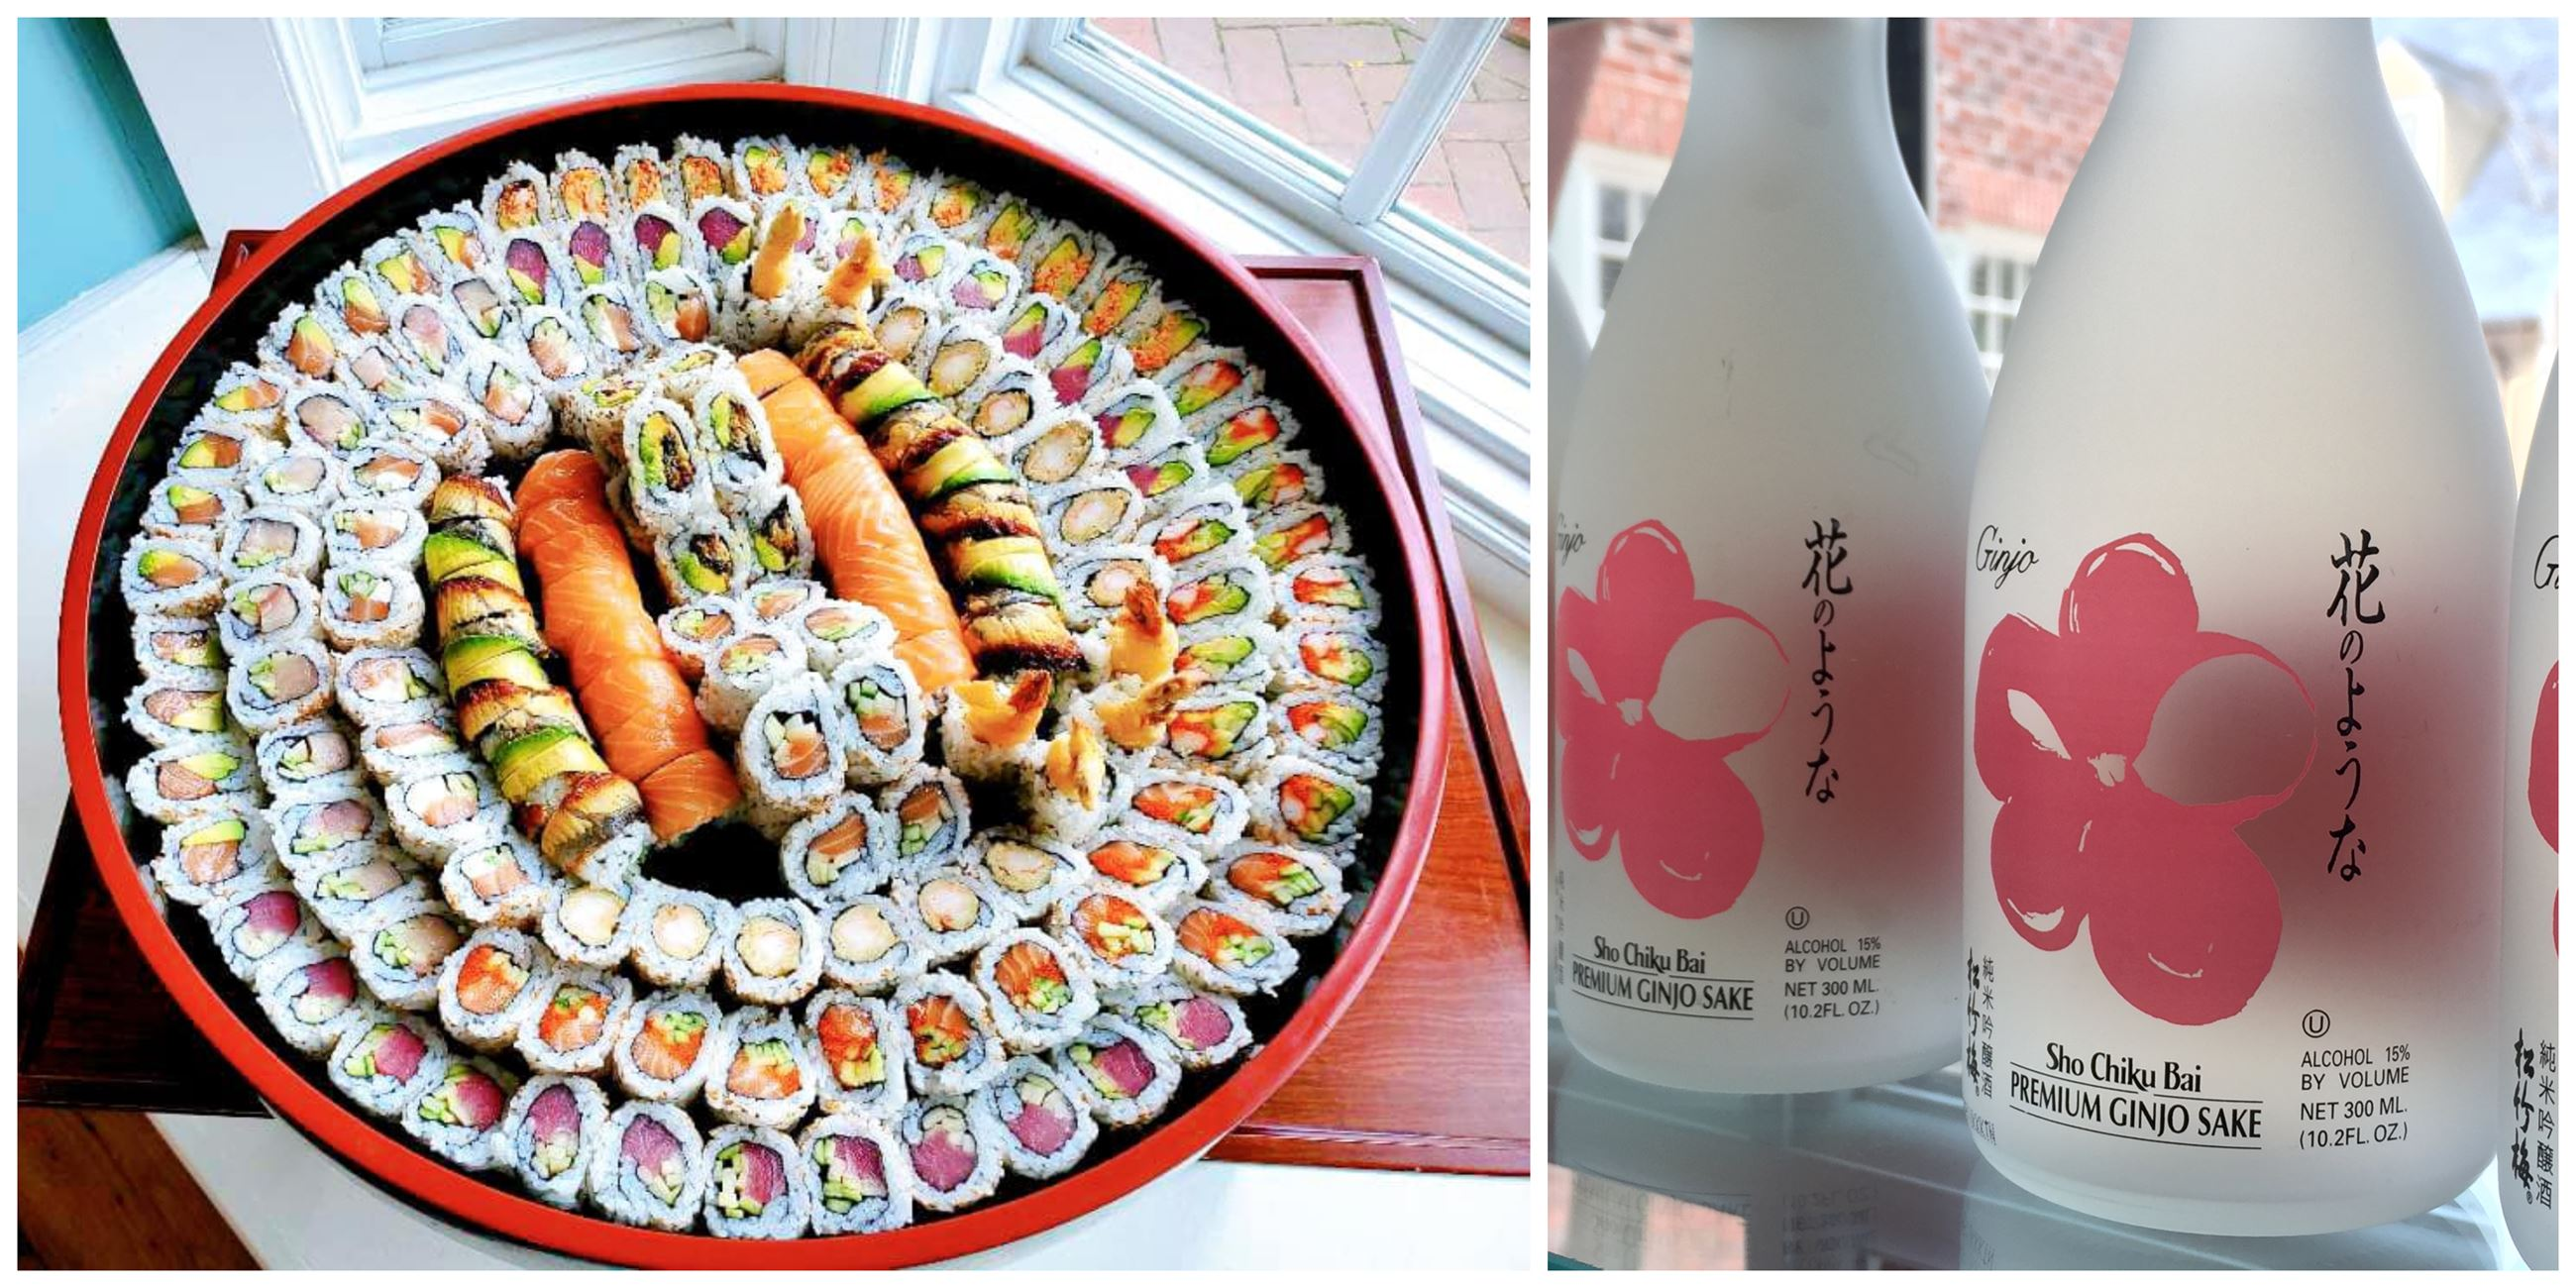 Custom sushi order from Umi sushi and bottles of premium ginjo sake